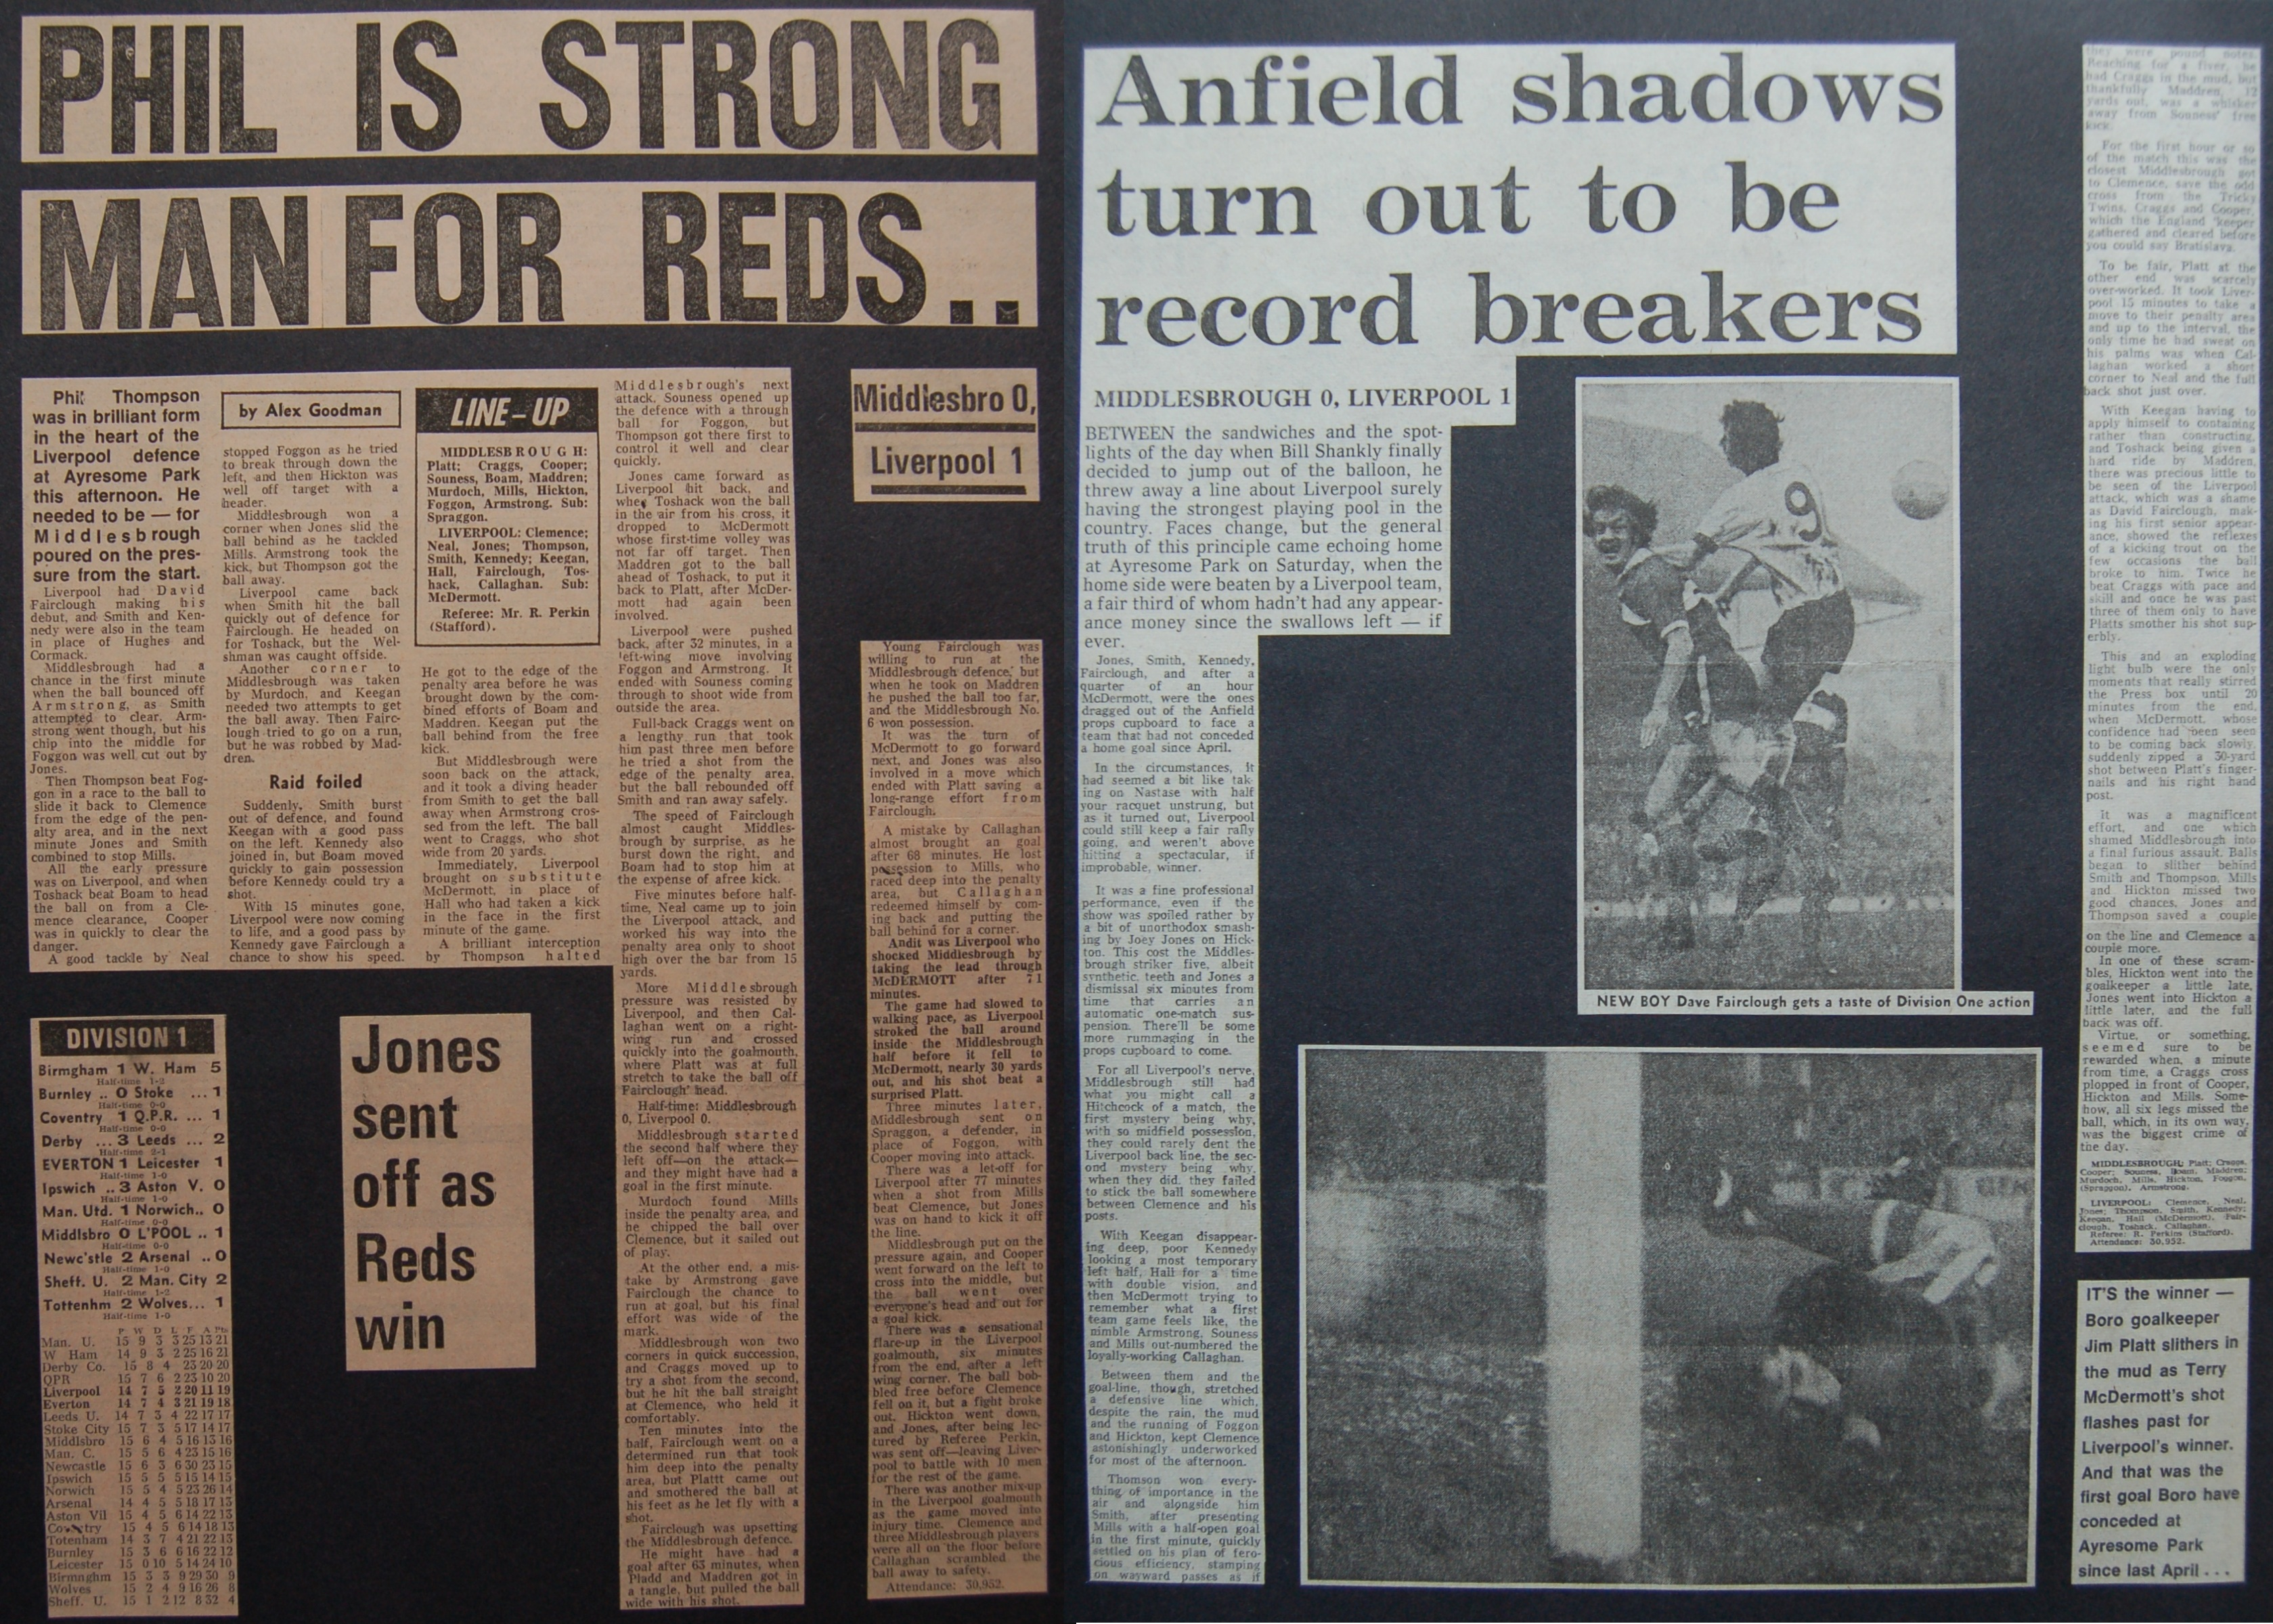 Phil is strong man for Reds - 1 November 1975